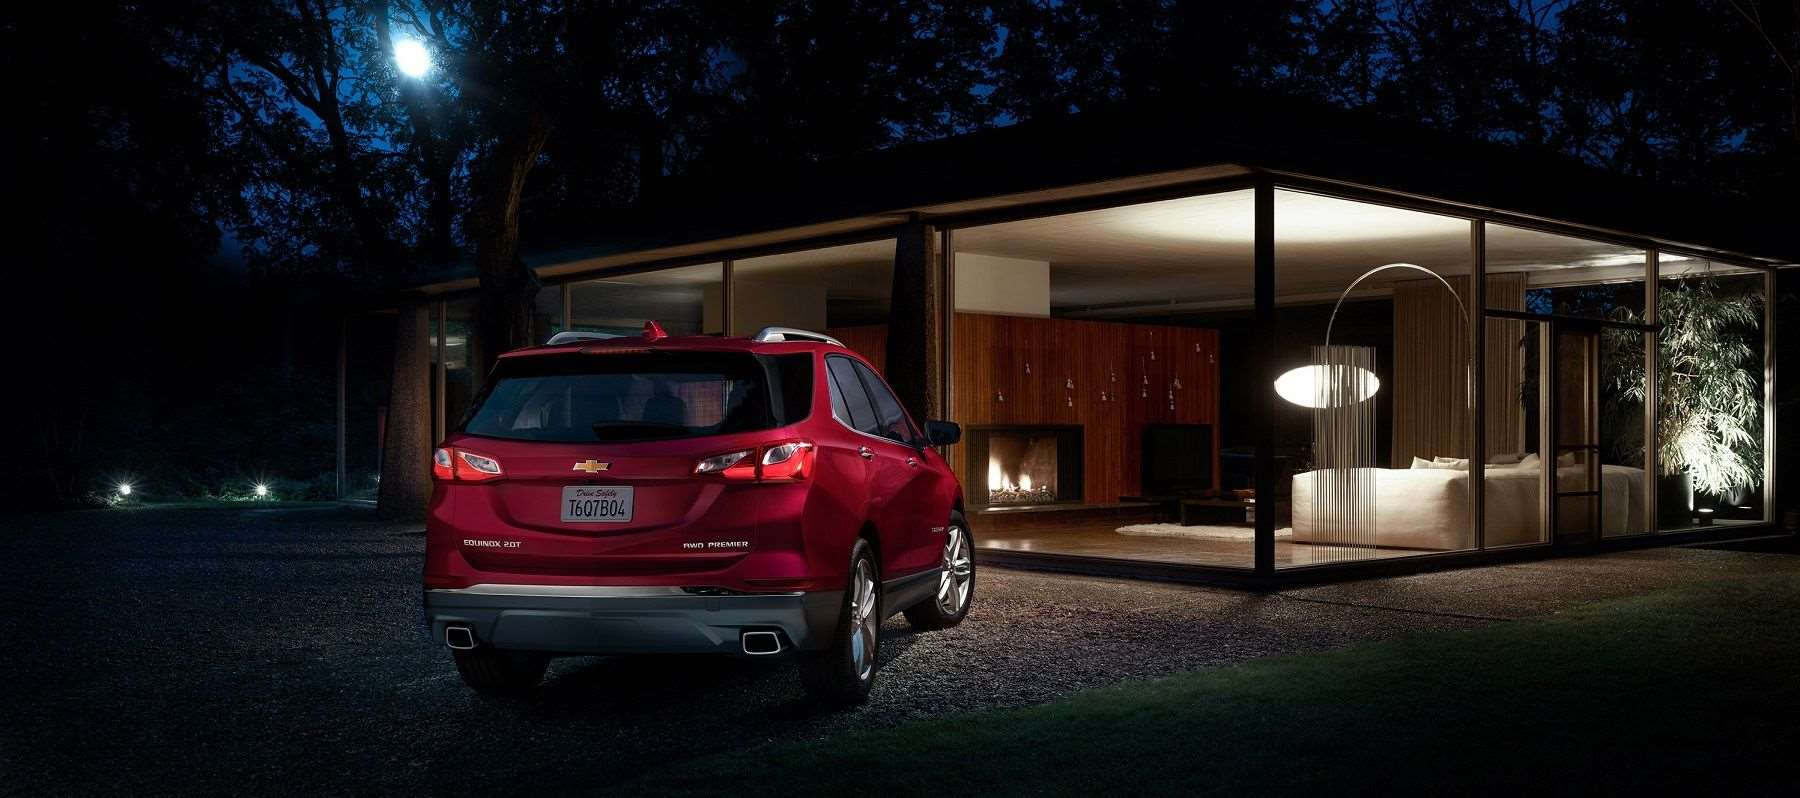 2019 Chevy Equinox | Estherville IA, Carroll IA, & Knoxville IA